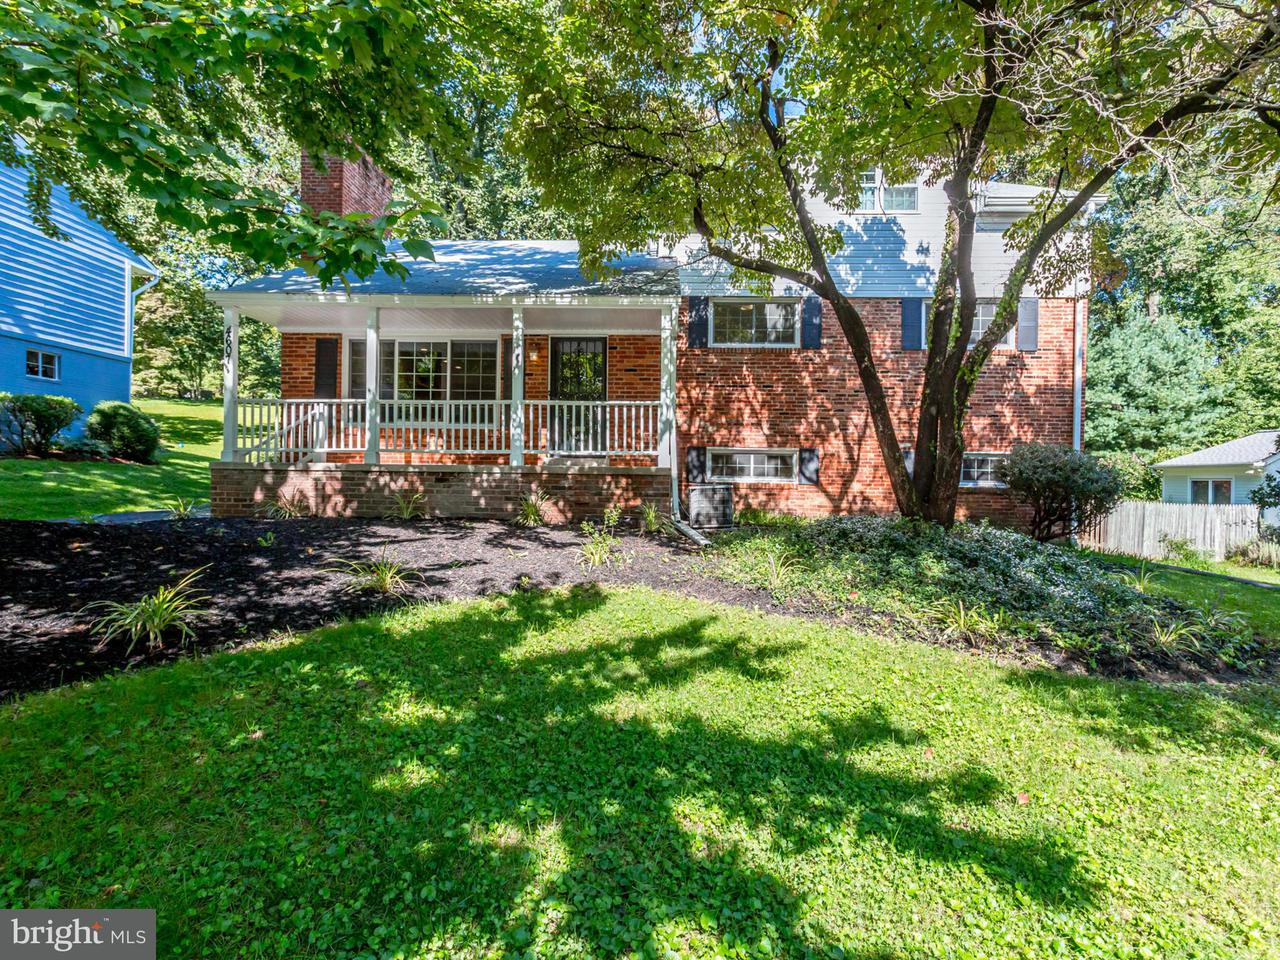 Single Family Home for Sale at 4607 40TH ST N 4607 40TH ST N Arlington, Virginia 22207 United States